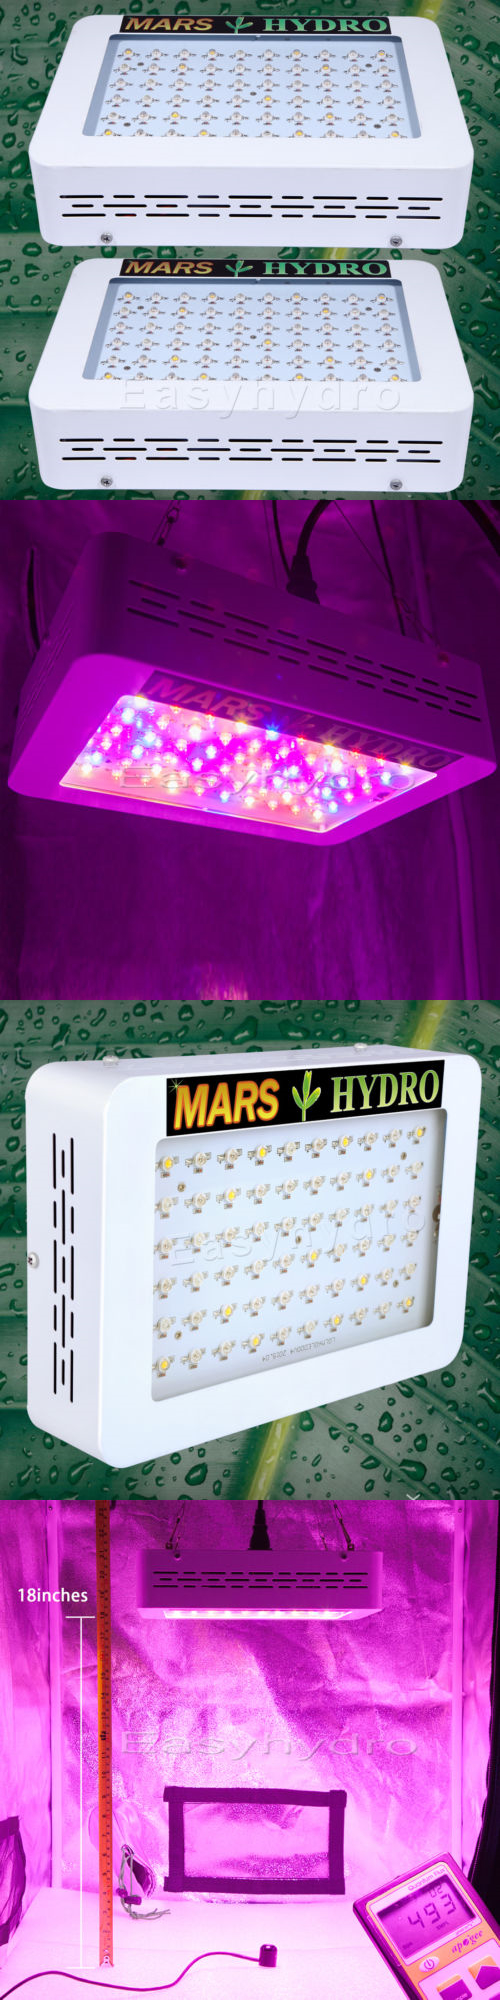 grow light kits 2pcs mars 300w full spectrum led grow light fveg flower indoor